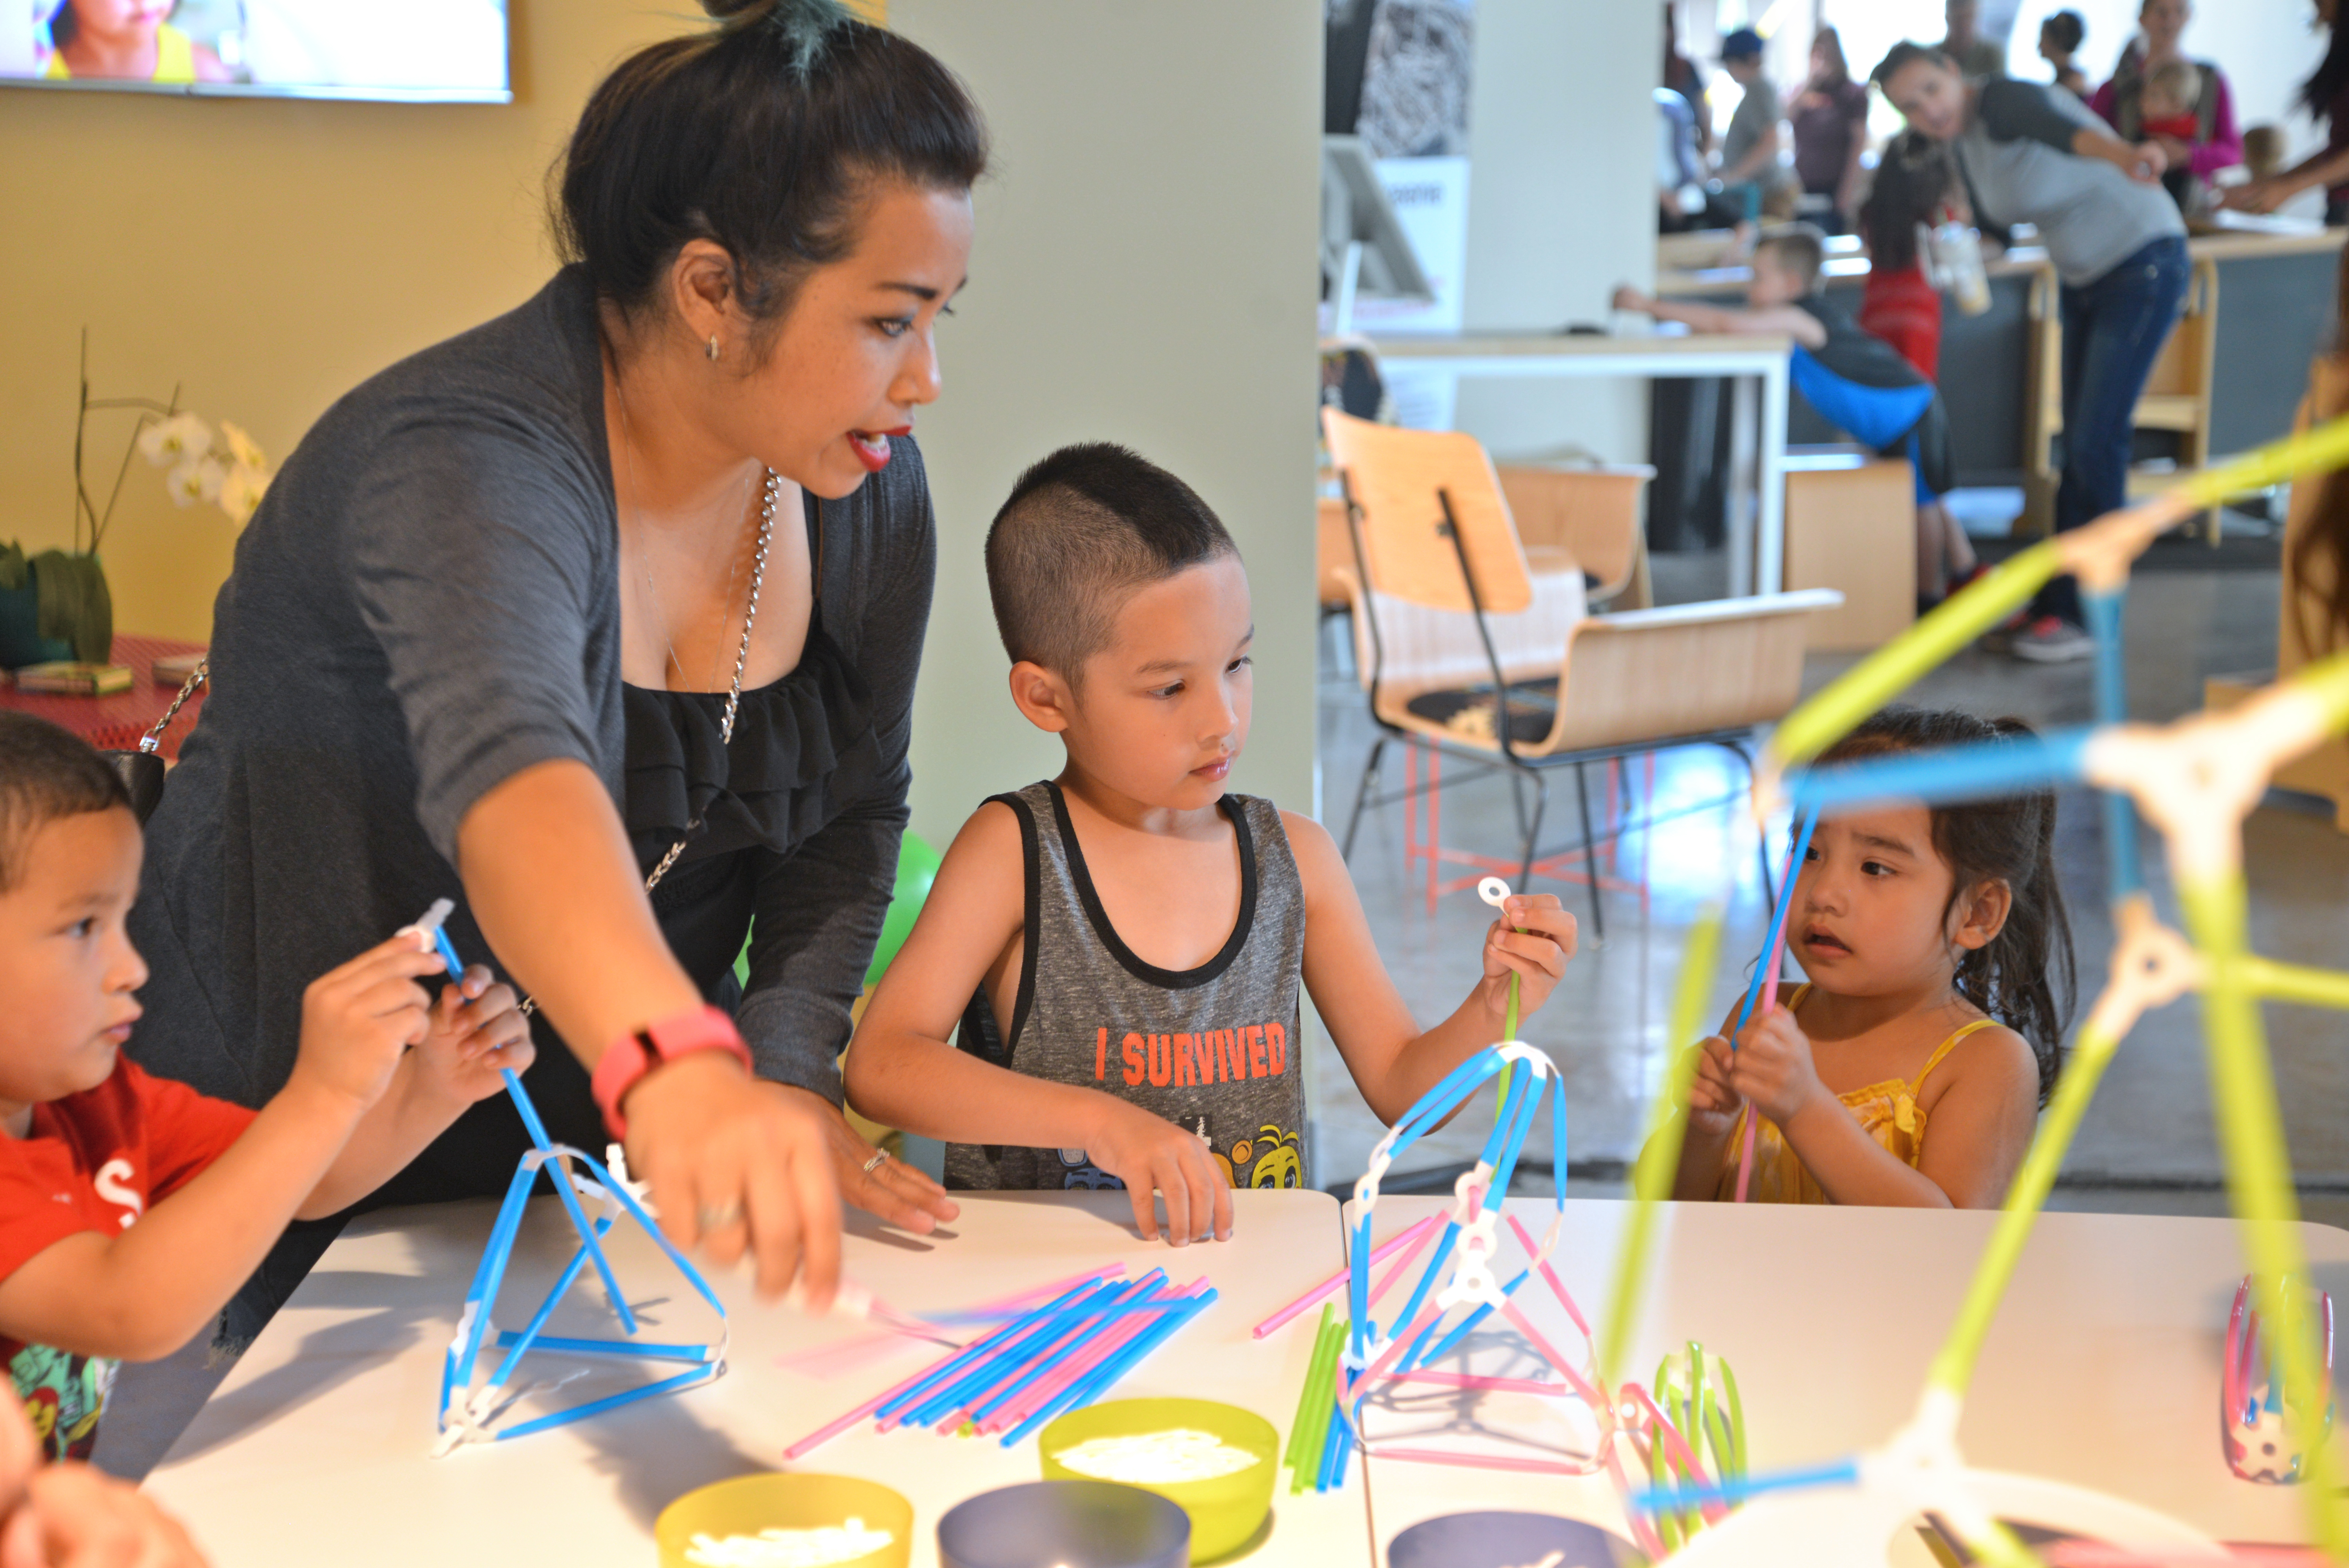 A woman leads 3 young children in a maker activity using straws and Strawbees